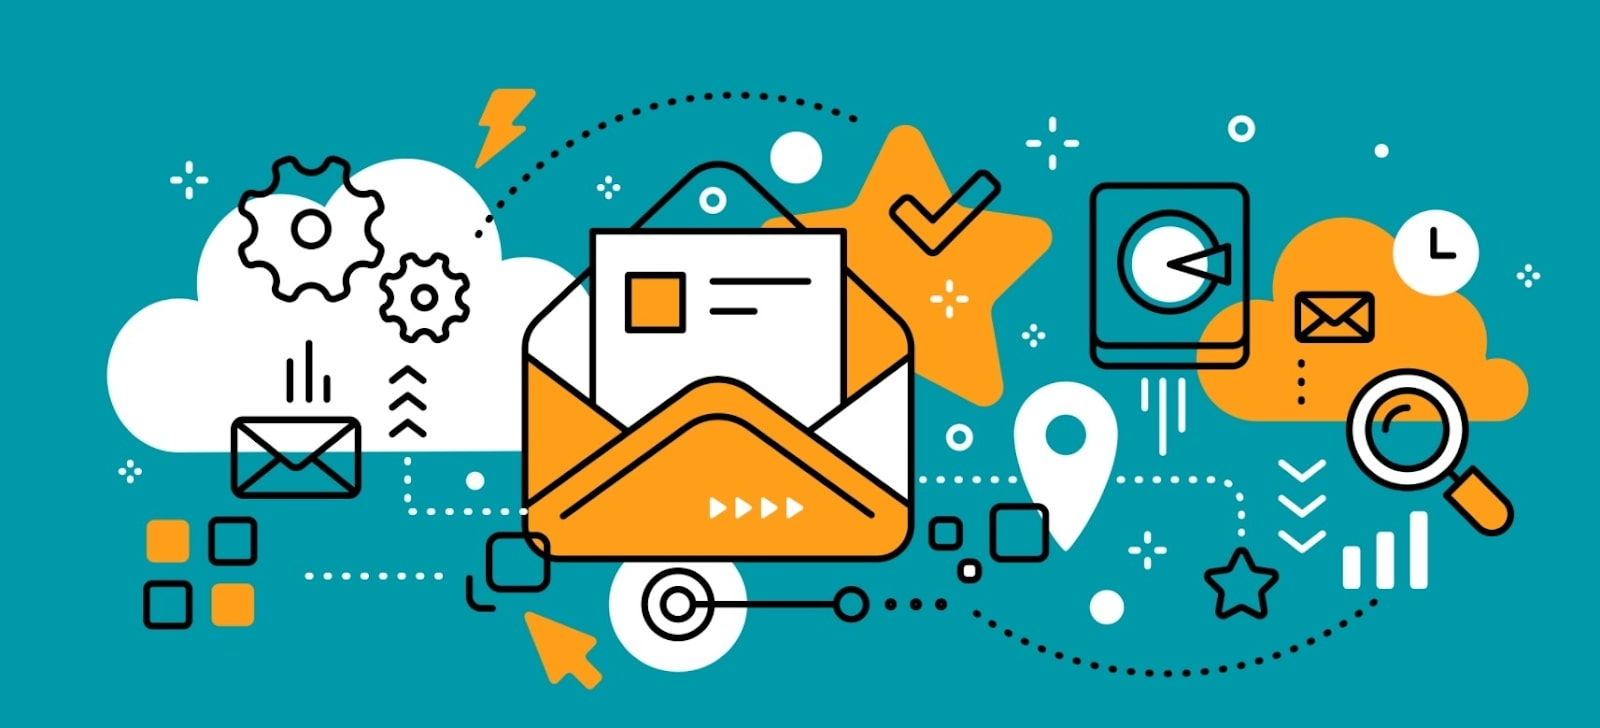 How to Create an Email Marketing Campaign that Highly Converts